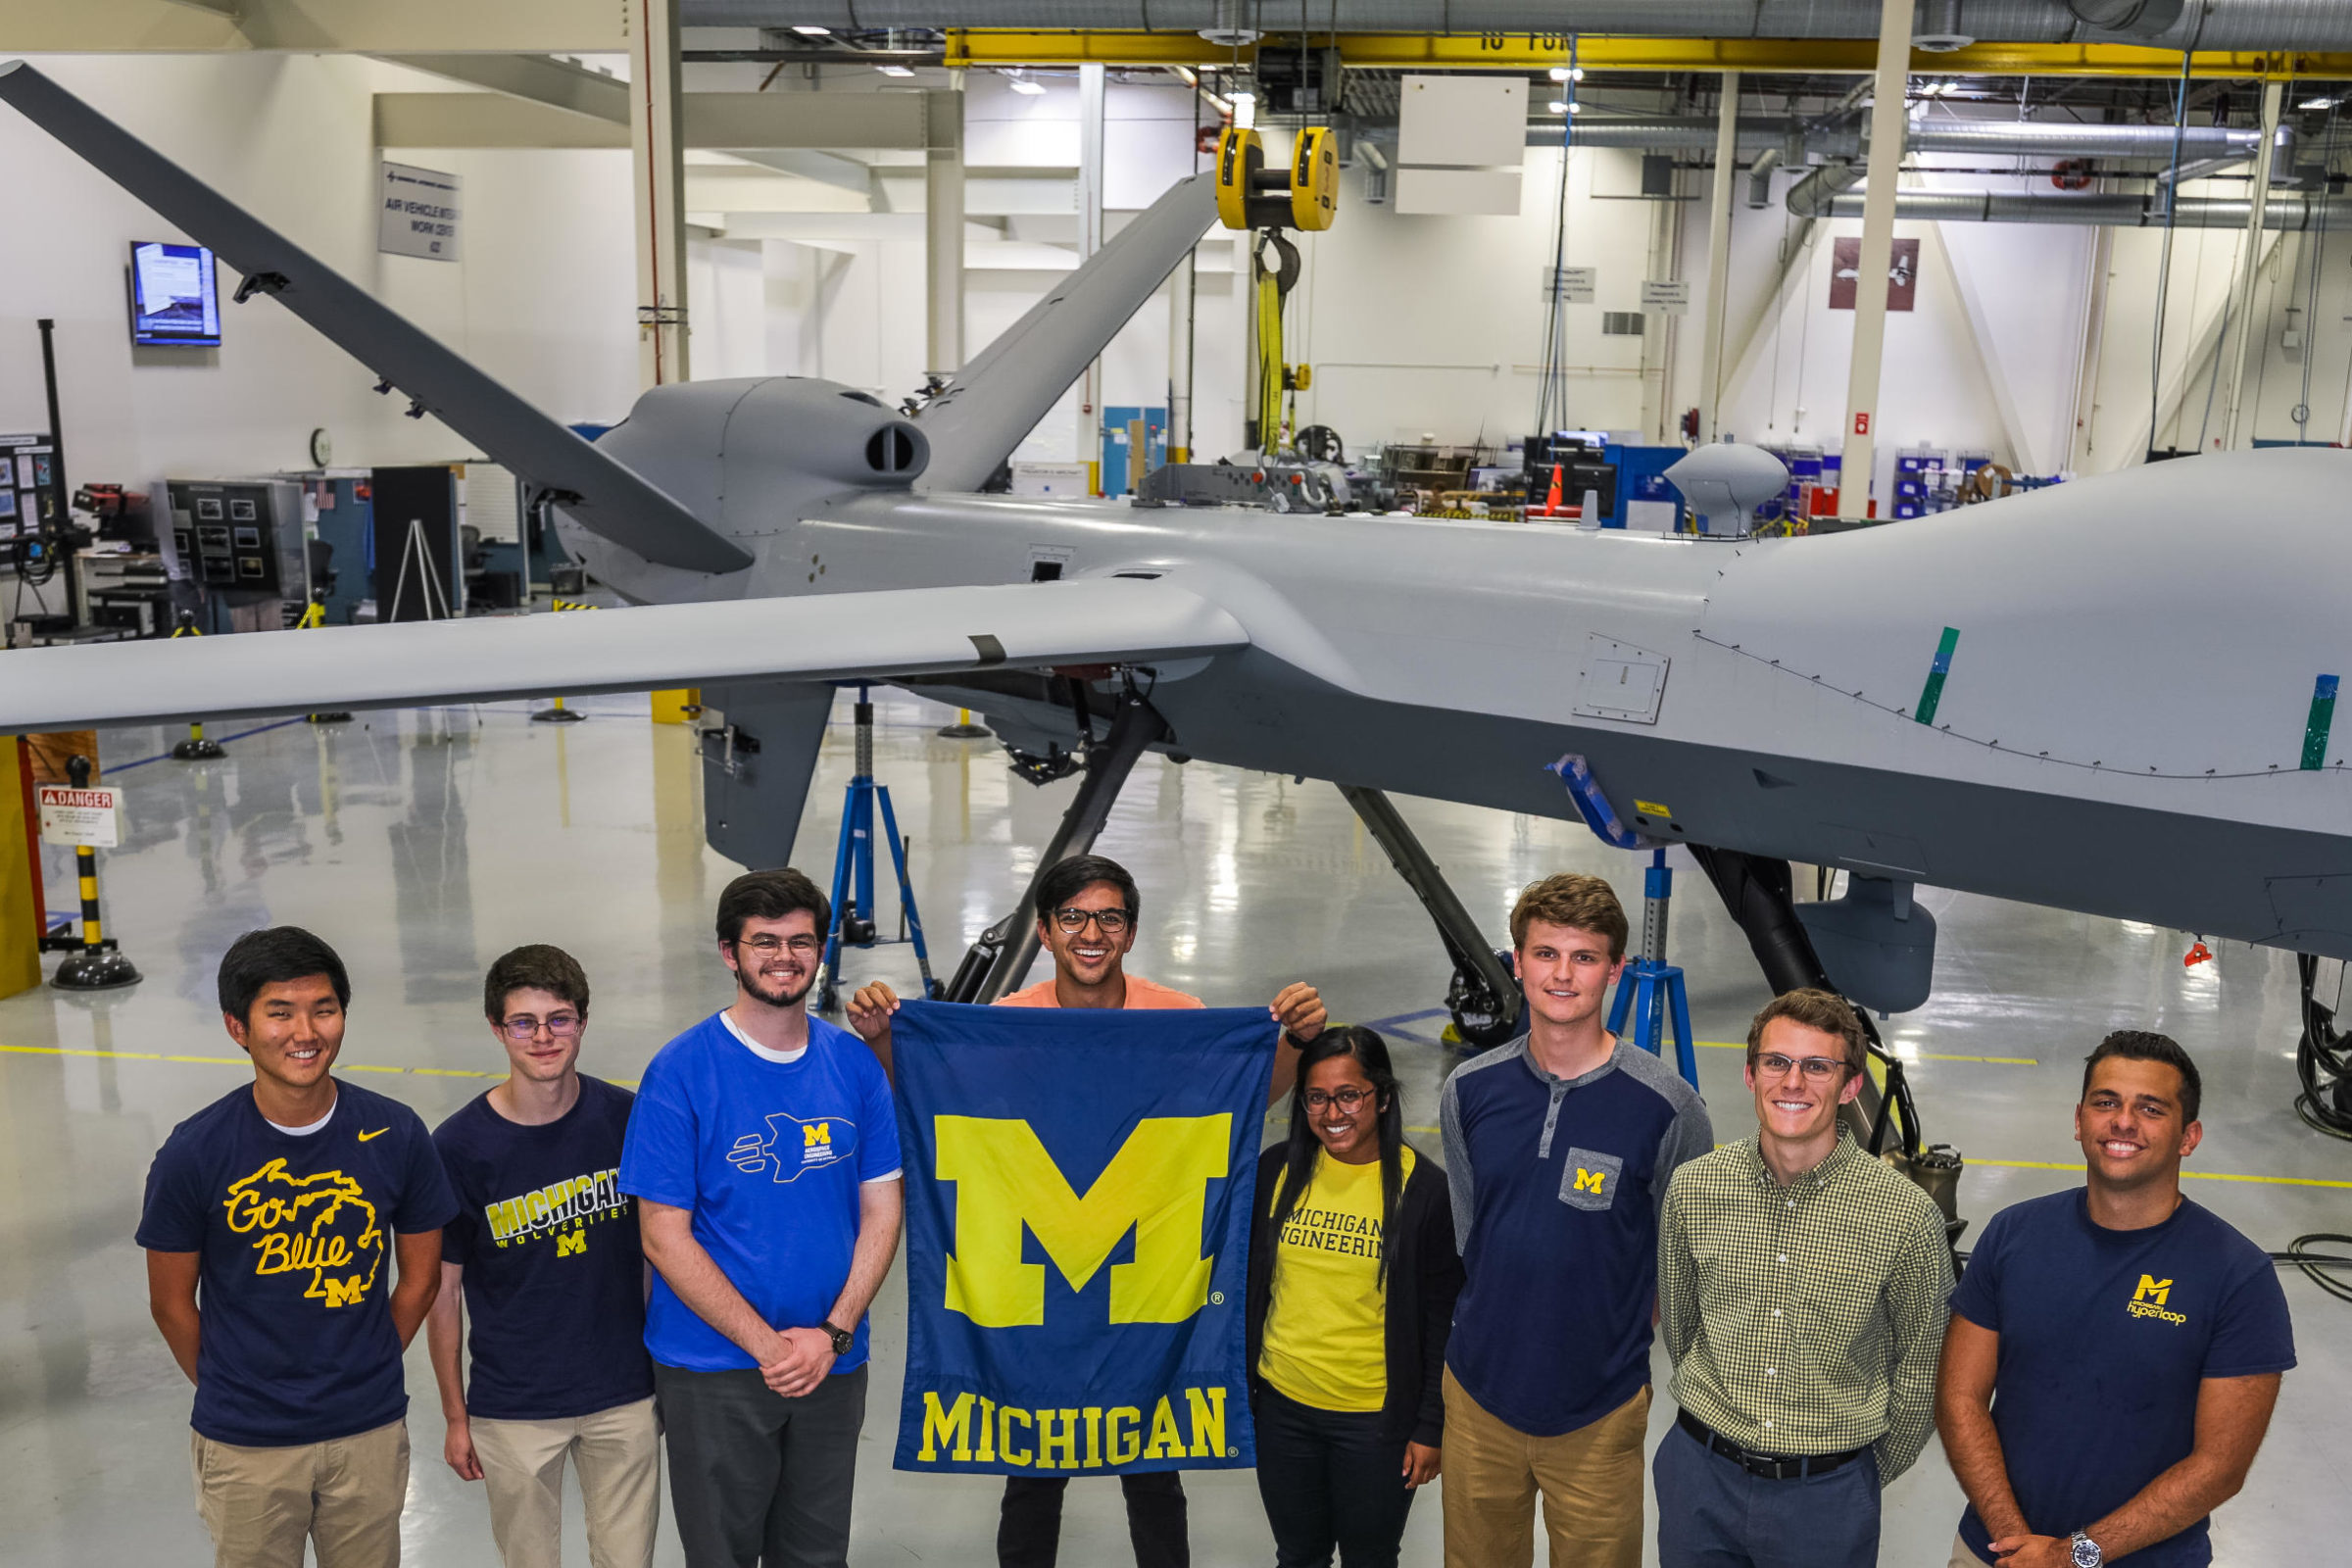 GA interns (from left to right) Dennis Park, Diego Toral, Henry Beh, Harsh Jhaveri, Amy Joseph, Dan Ferriero, Philip Wdowiak, and Alex Laporte stand in front of a MQ-9 Reaper (Predator B).